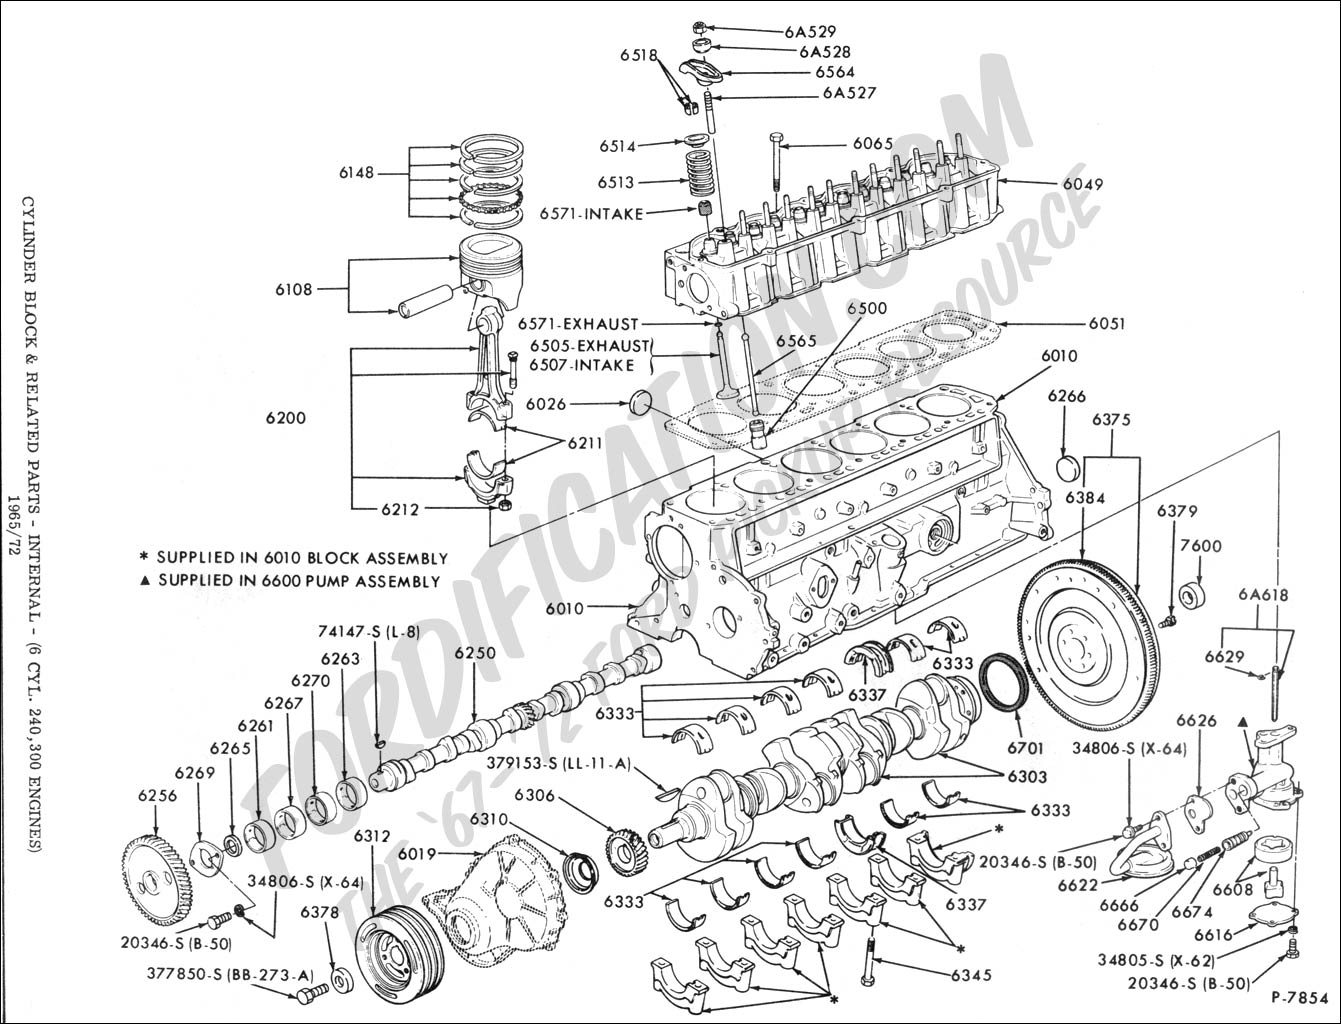 Bmw 525i Spark Plug From The The To Motherboard